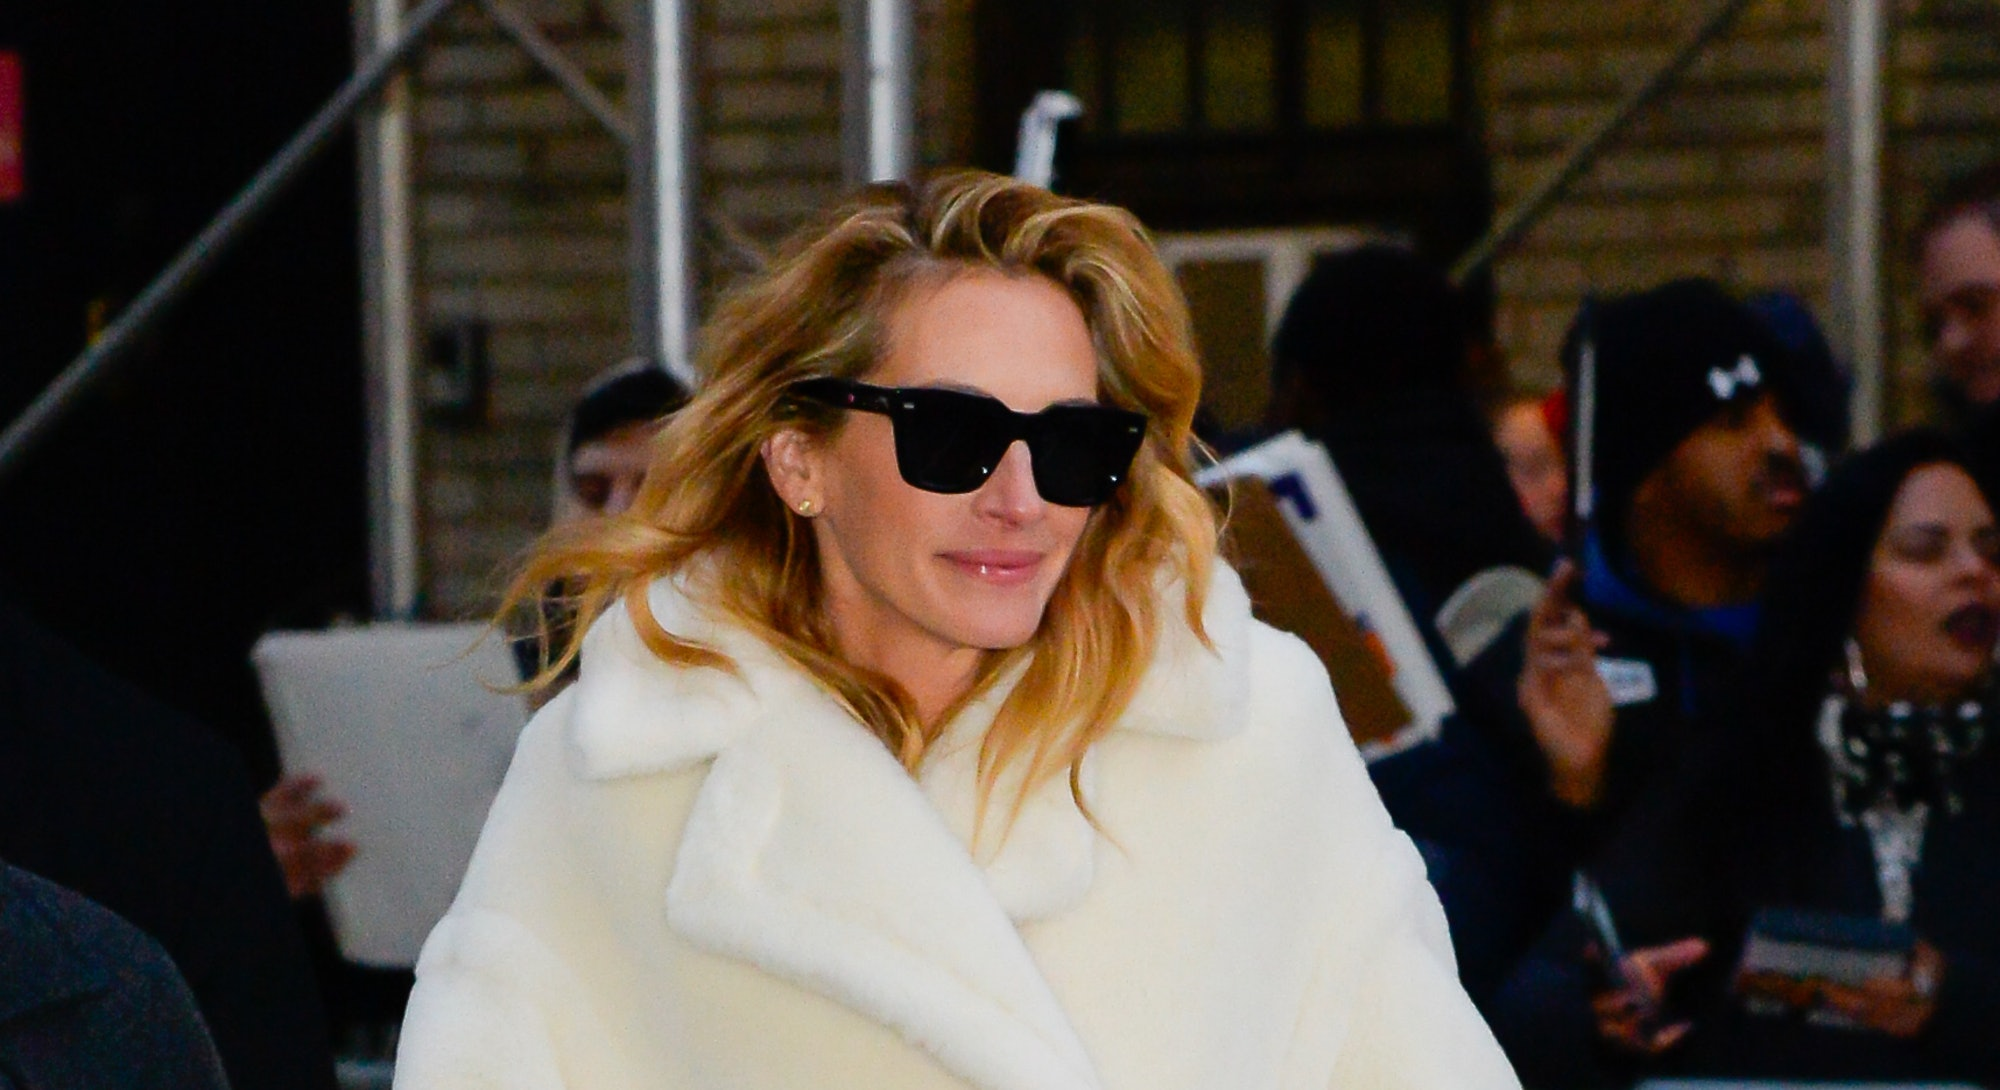 Actor Julia Roberts wears a cream ovesize coat for The Late Show with Stephen Colbert on December 4, 2018 in New York City.